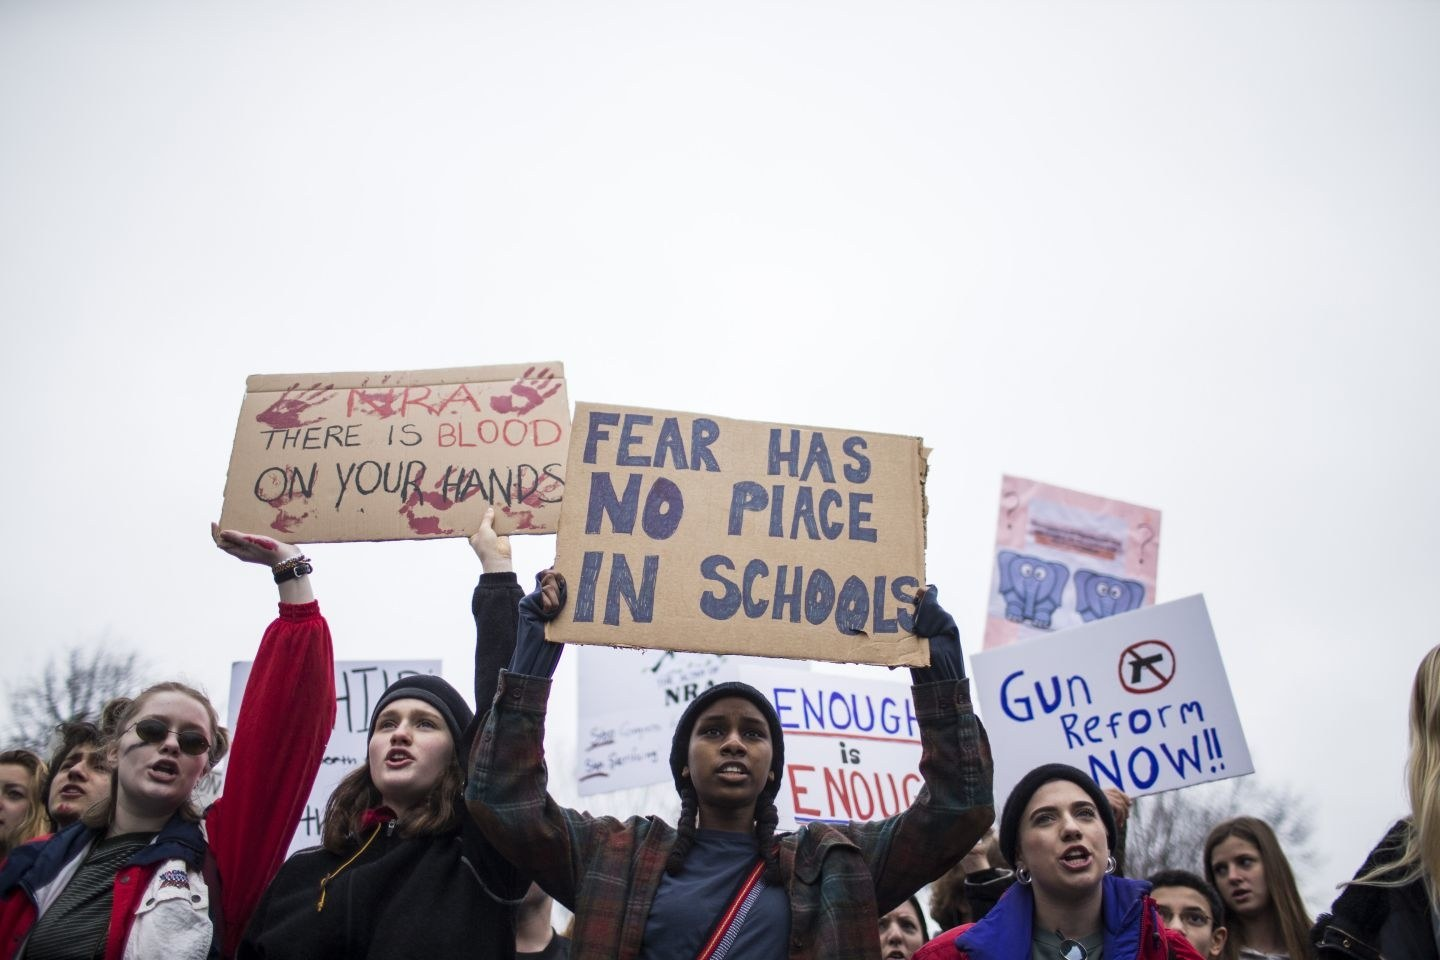 Survivors of the Parkland school shooting protesting for stricter Gun Laws. (Public Domain Photo)